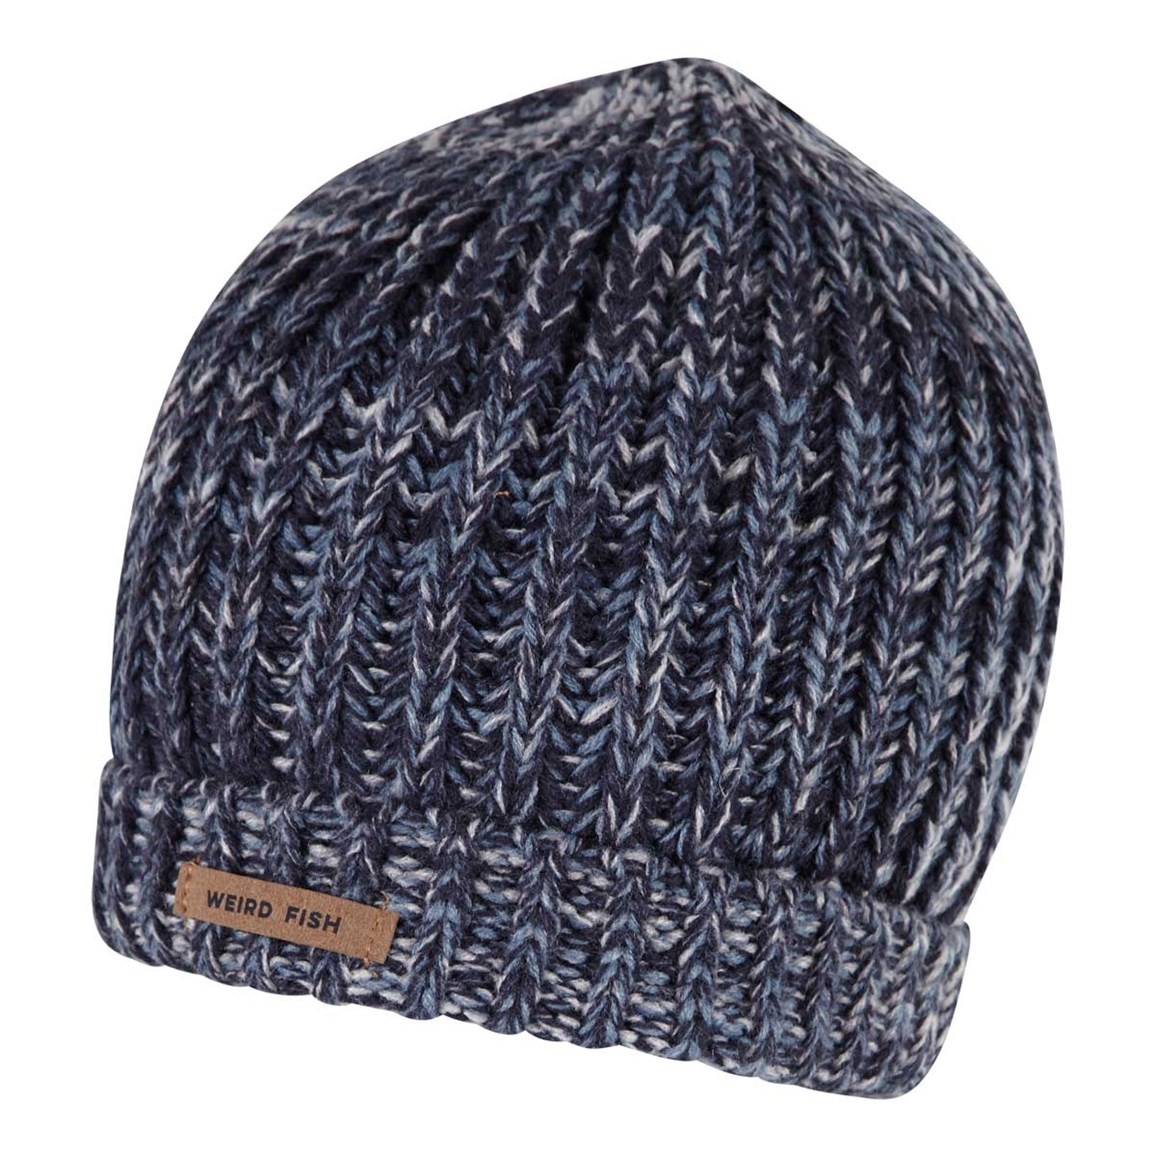 Weird Fish Killington Chunky Knit Beanie Dark Navy